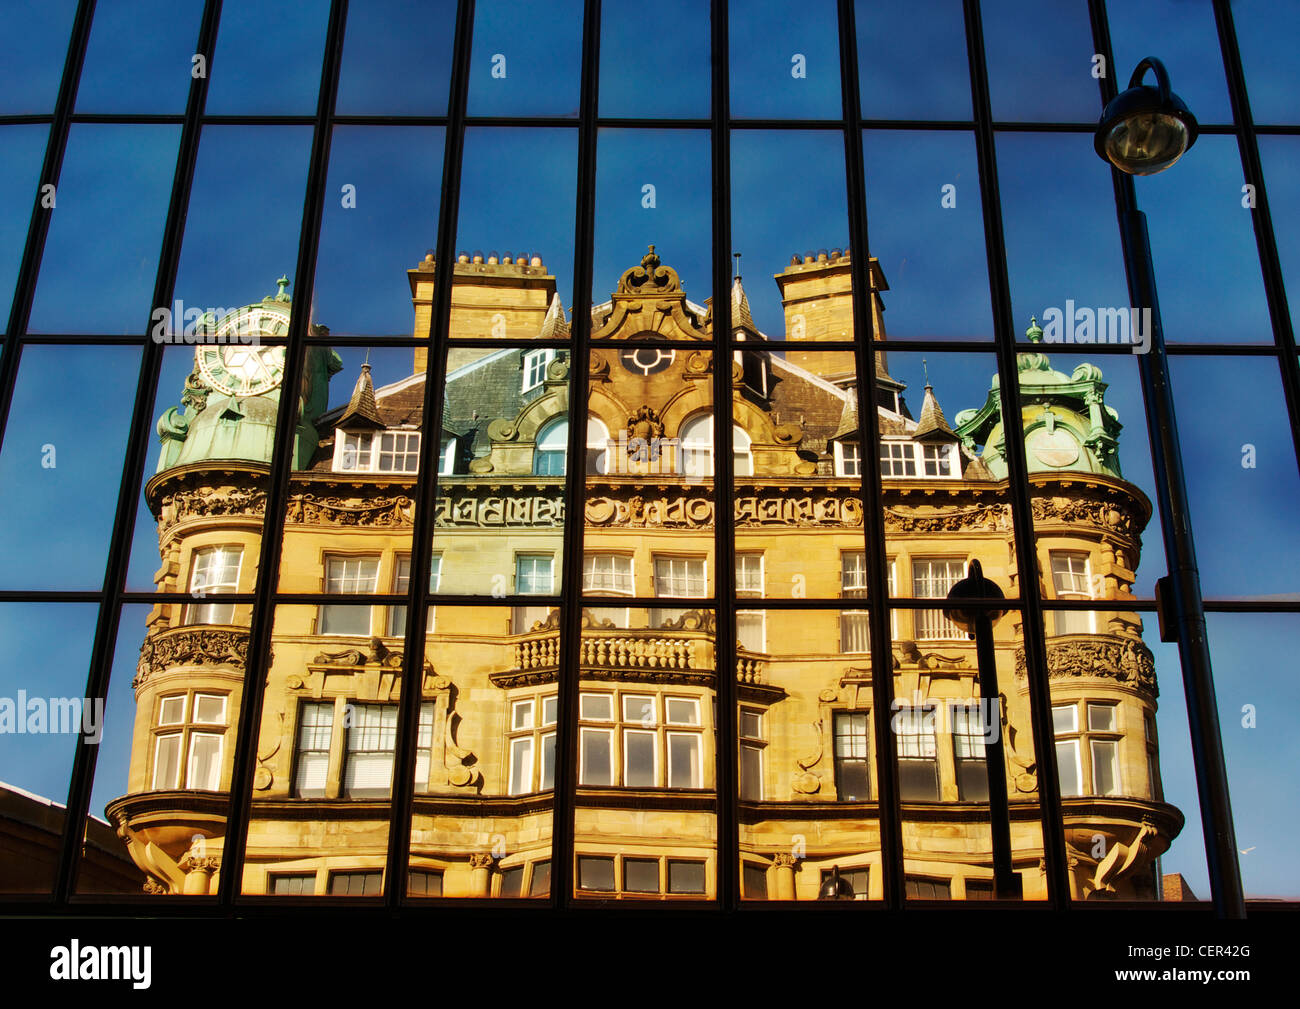 Historic building on Blackett Street reflected in glass panels. - Stock Image